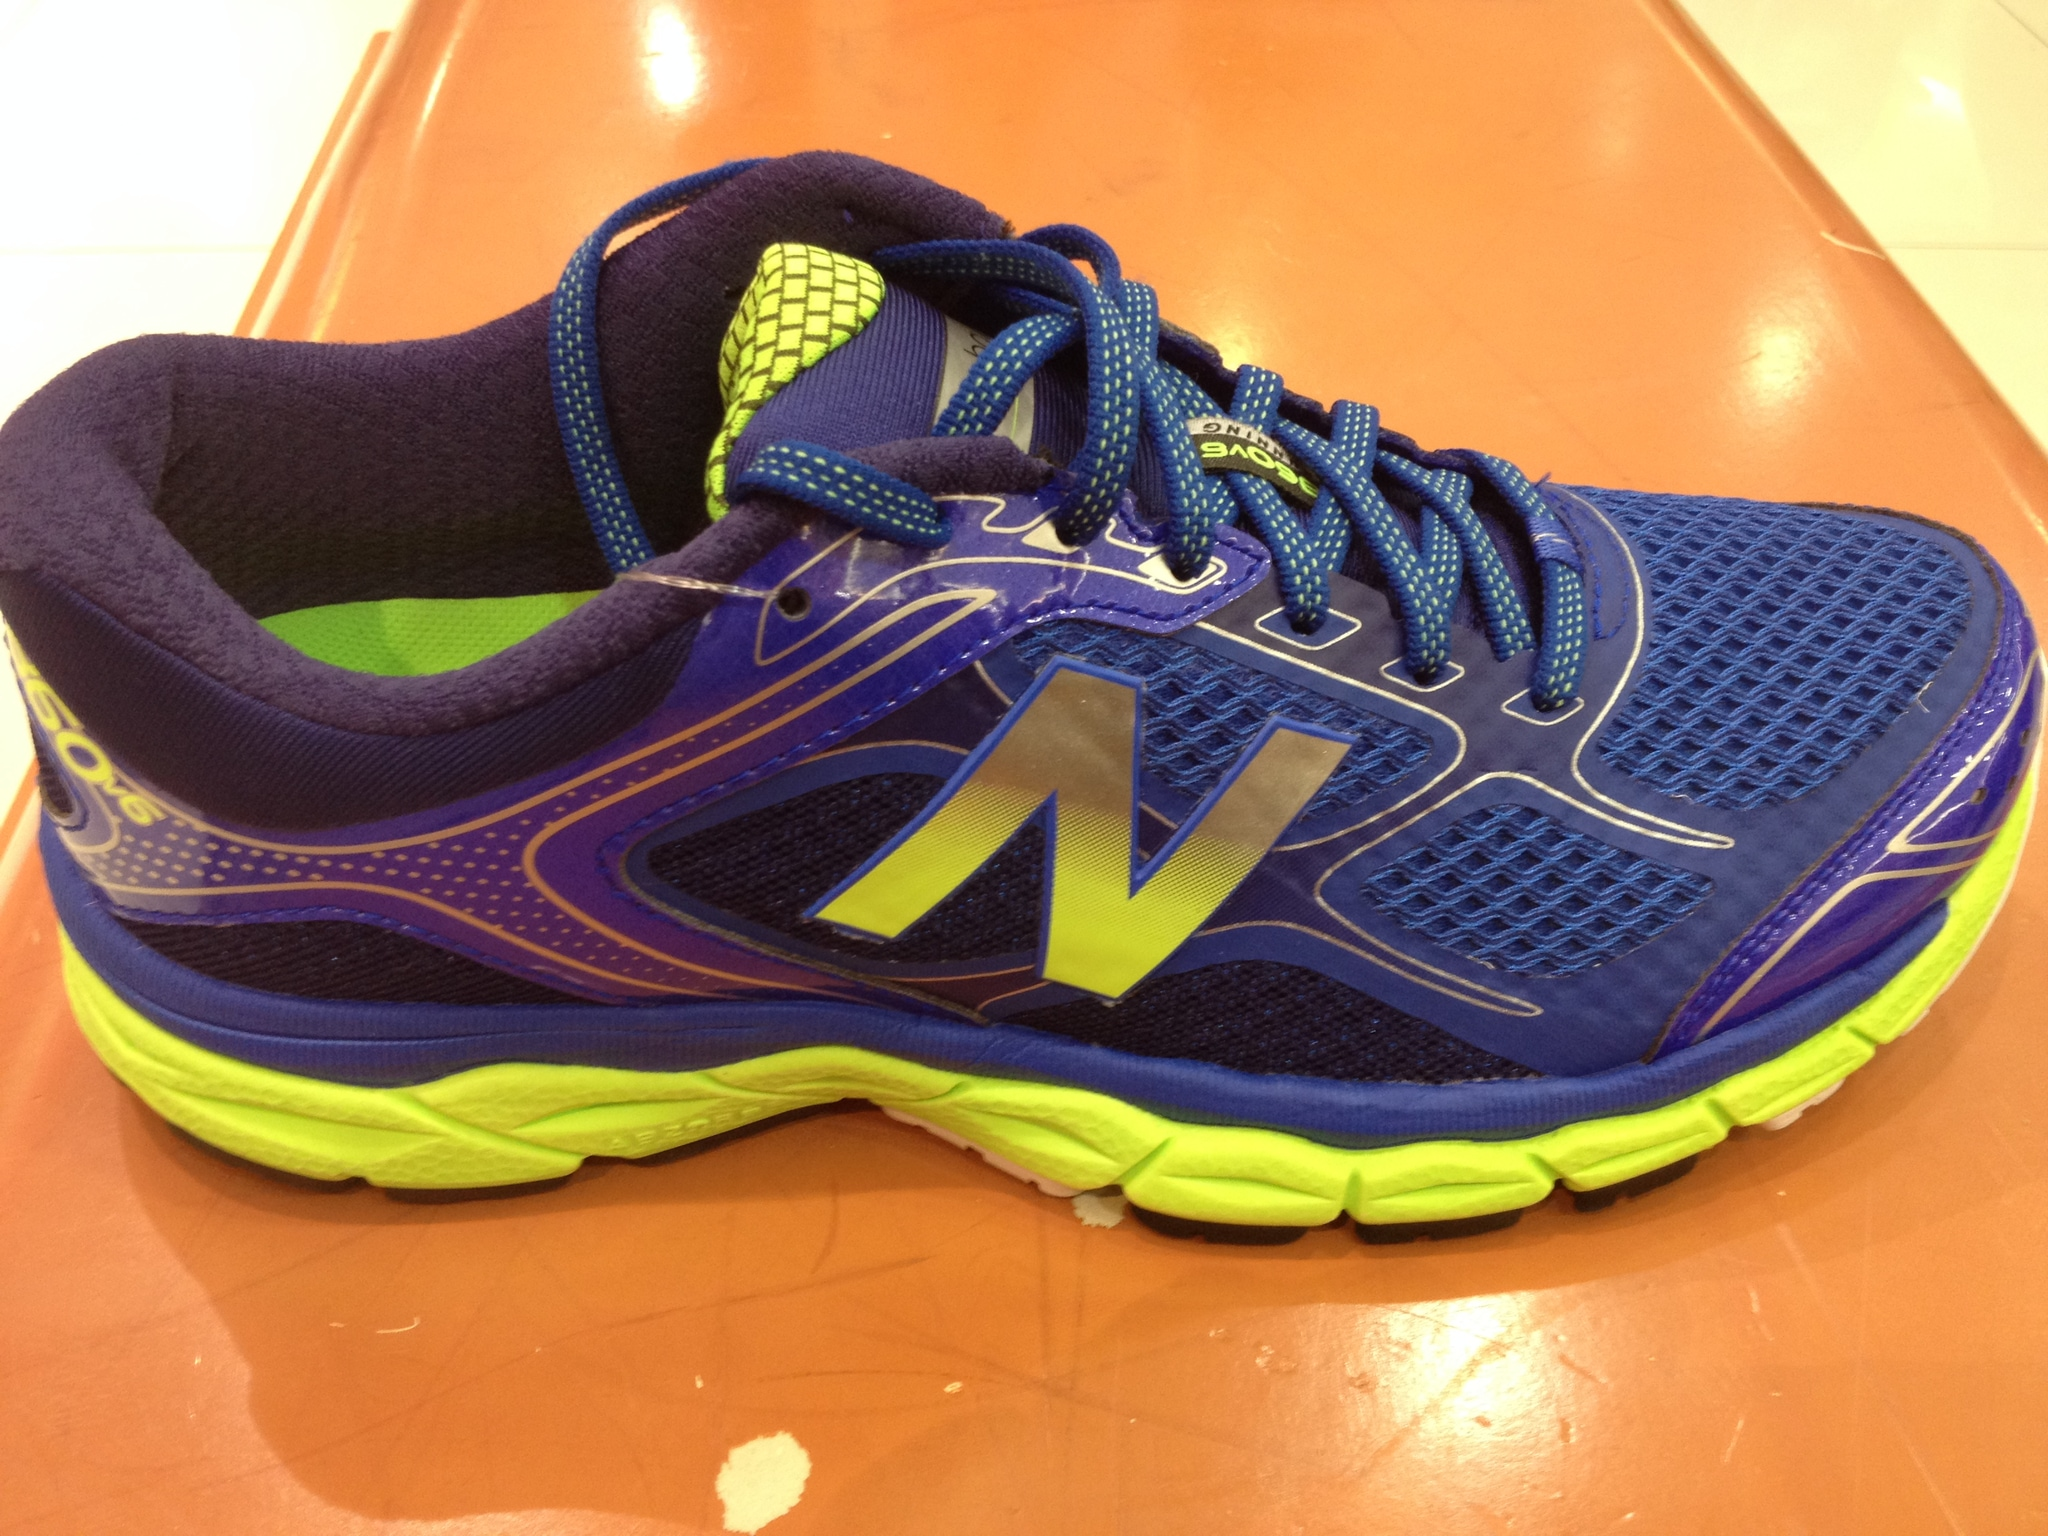 new balance 860v6. jual original new balance 860v6 men\u0027s running shoes - blueozry_shop | tokopedia